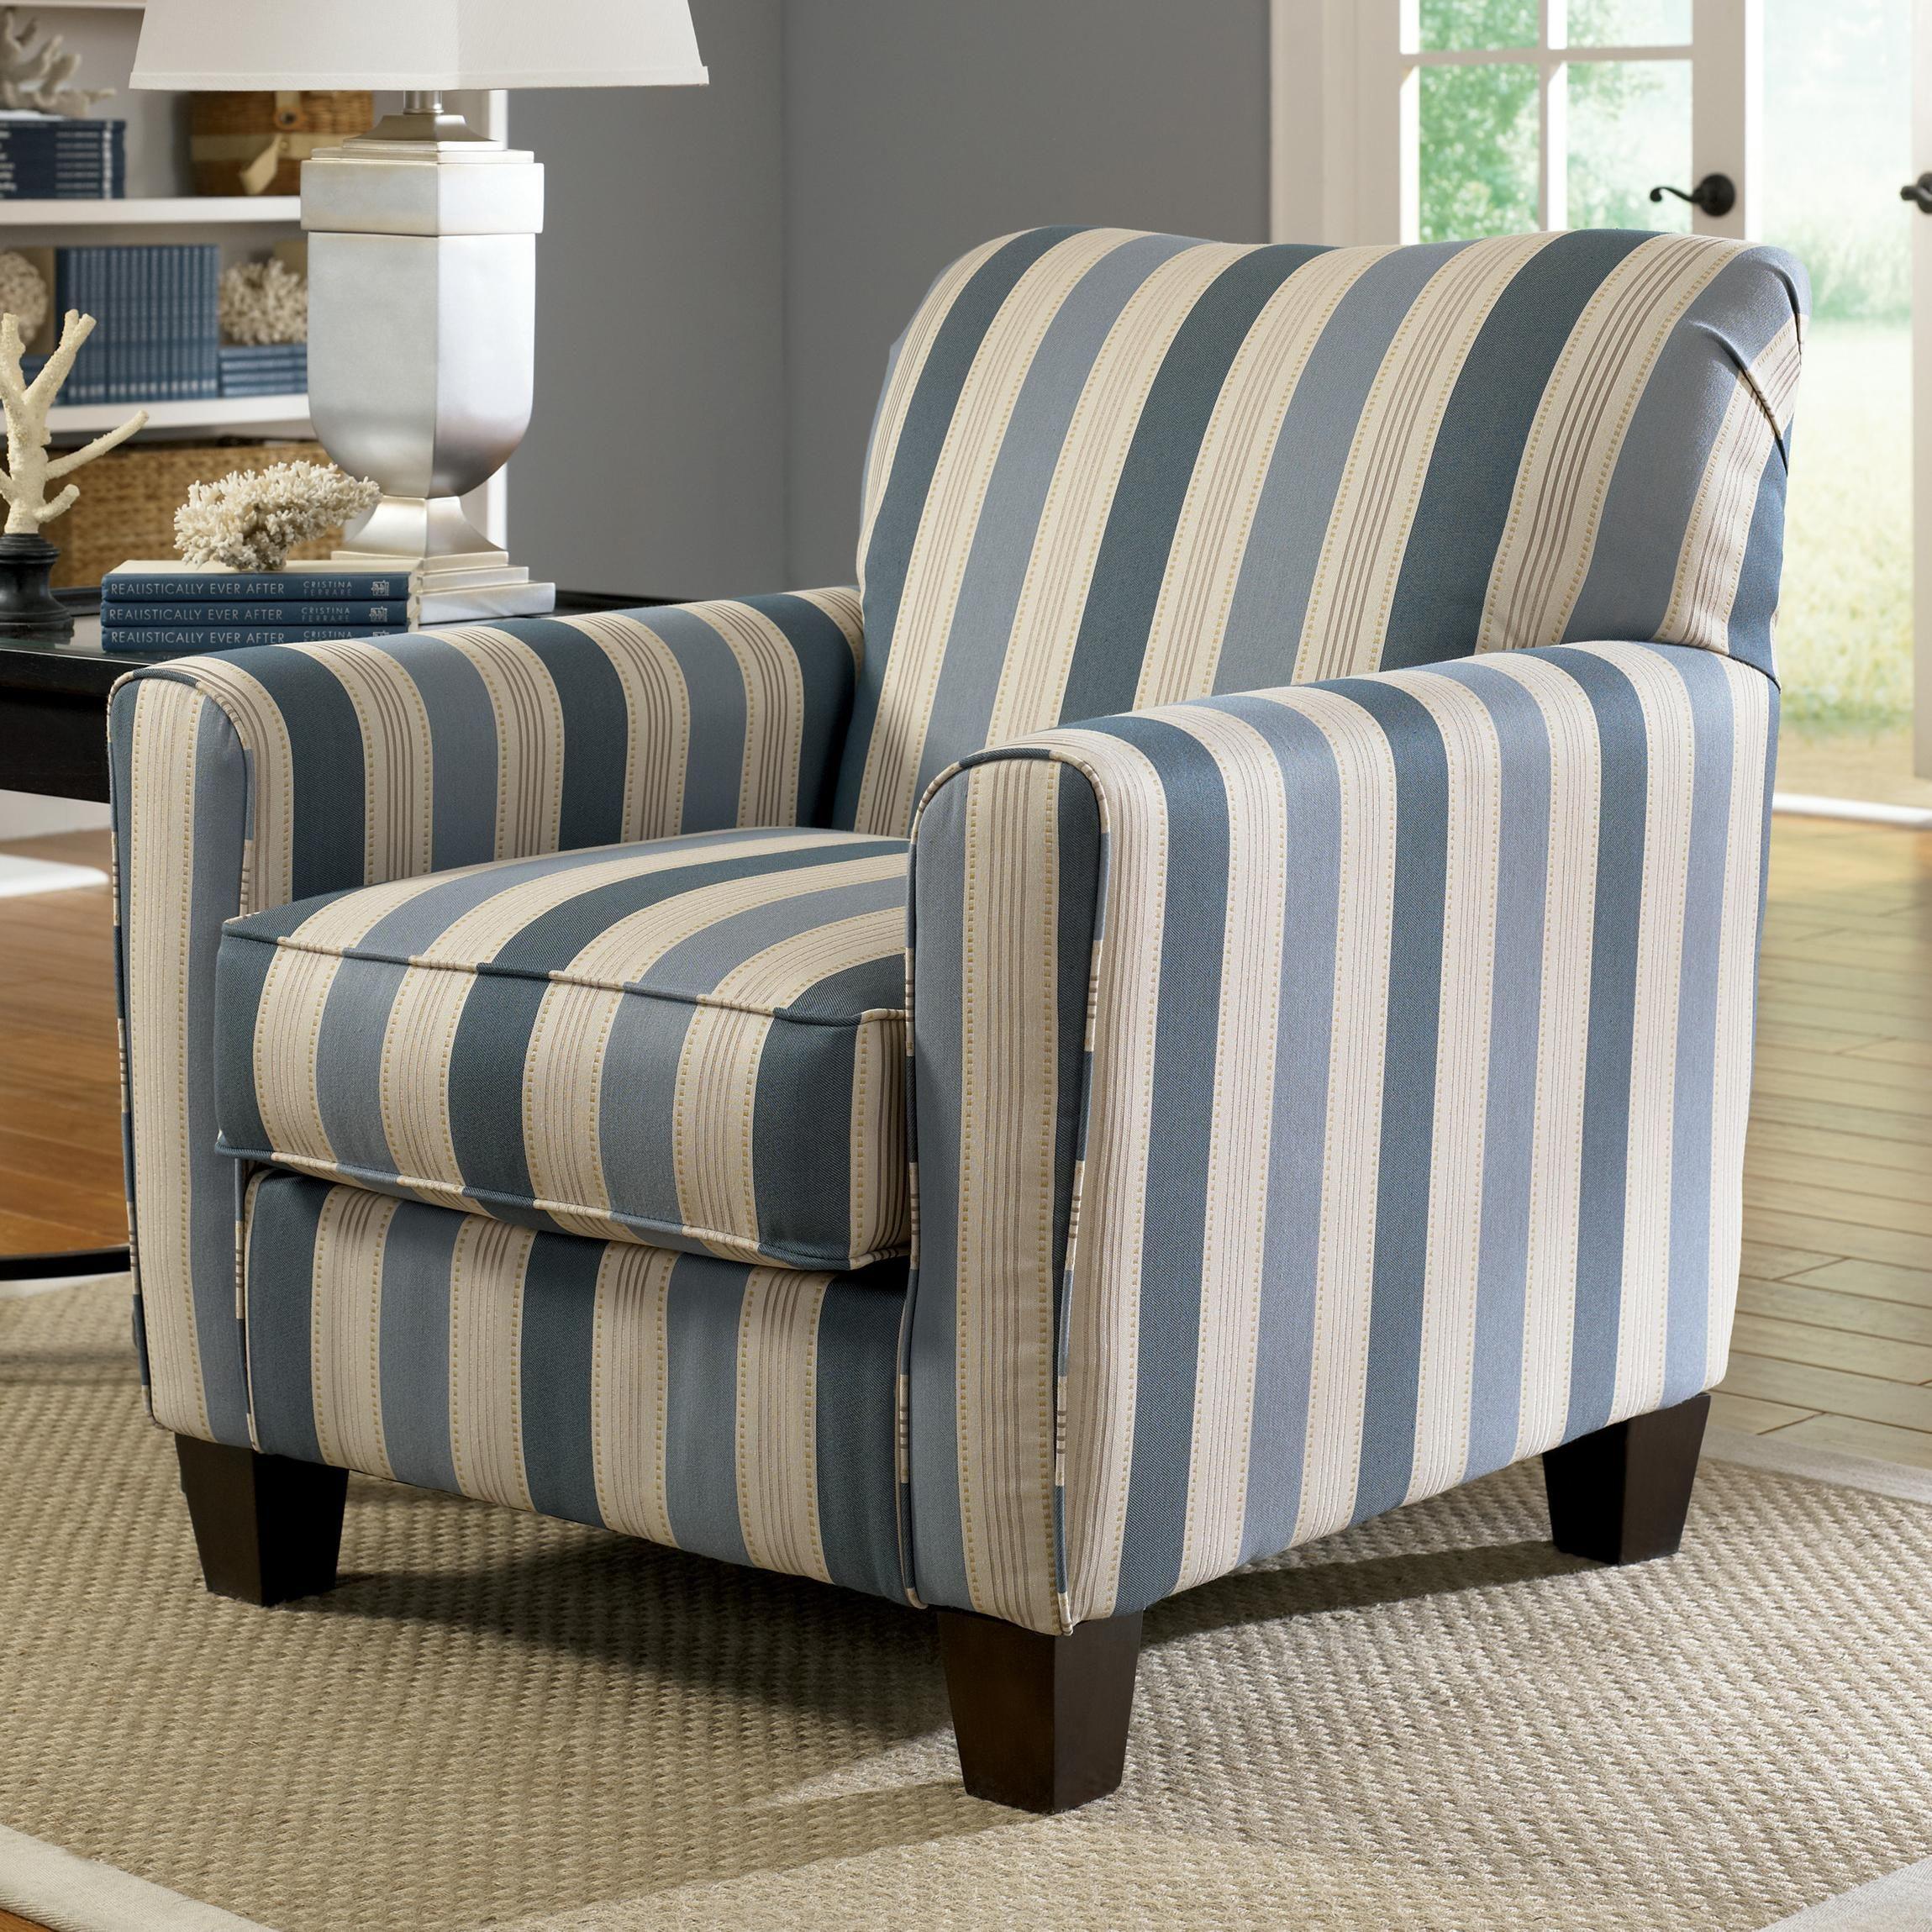 Best Addison Blue Stripe Accent Chair With Exposed Wood Feet 400 x 300